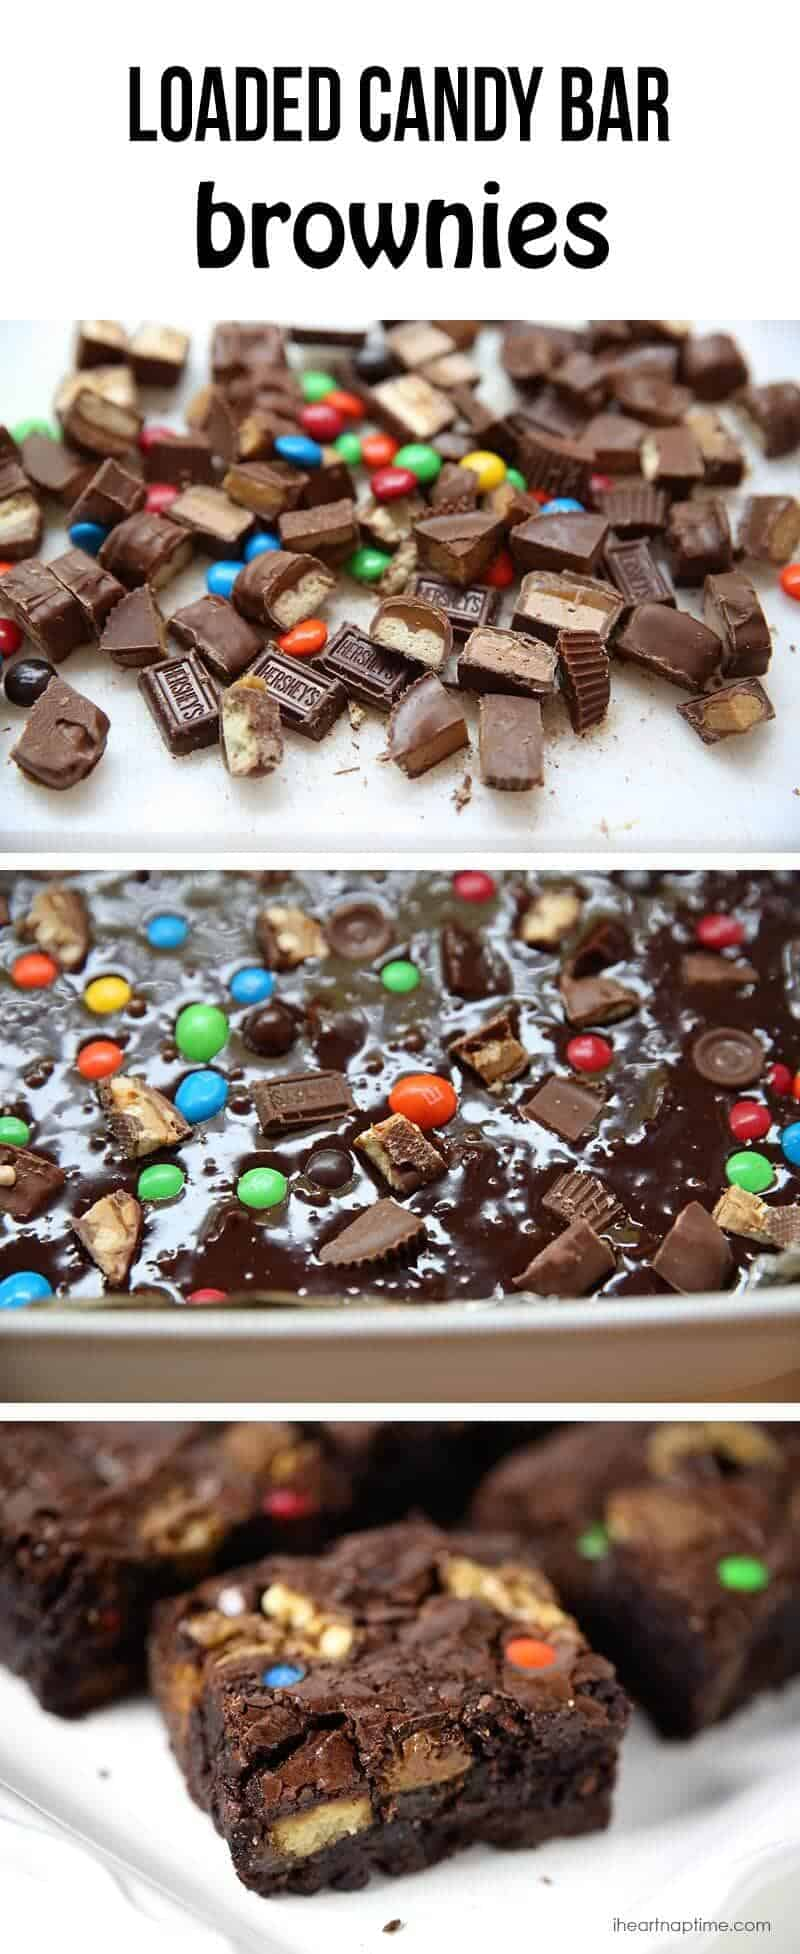 Loaded candy bar brownies on I Heart Nap Time b